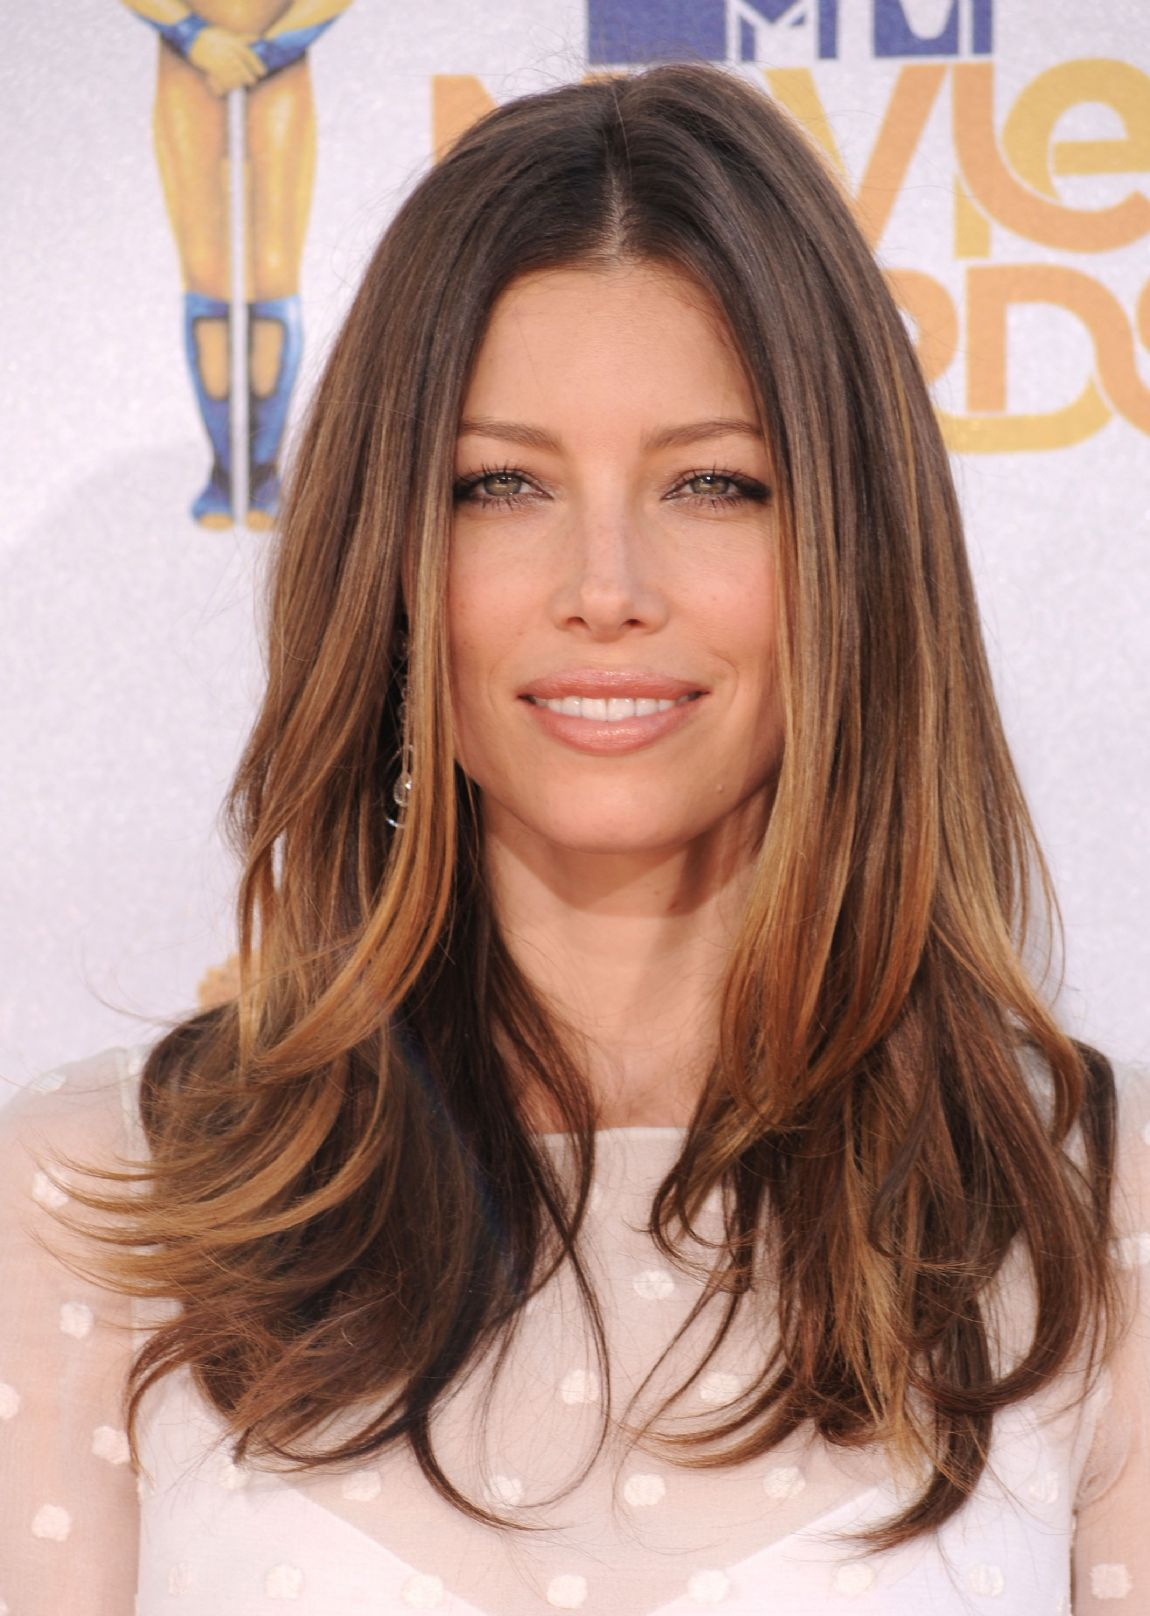 ... ombre-hairstyles-celebrity-ombre-hair-celebrity-ombre-hairstyles-8.jpg